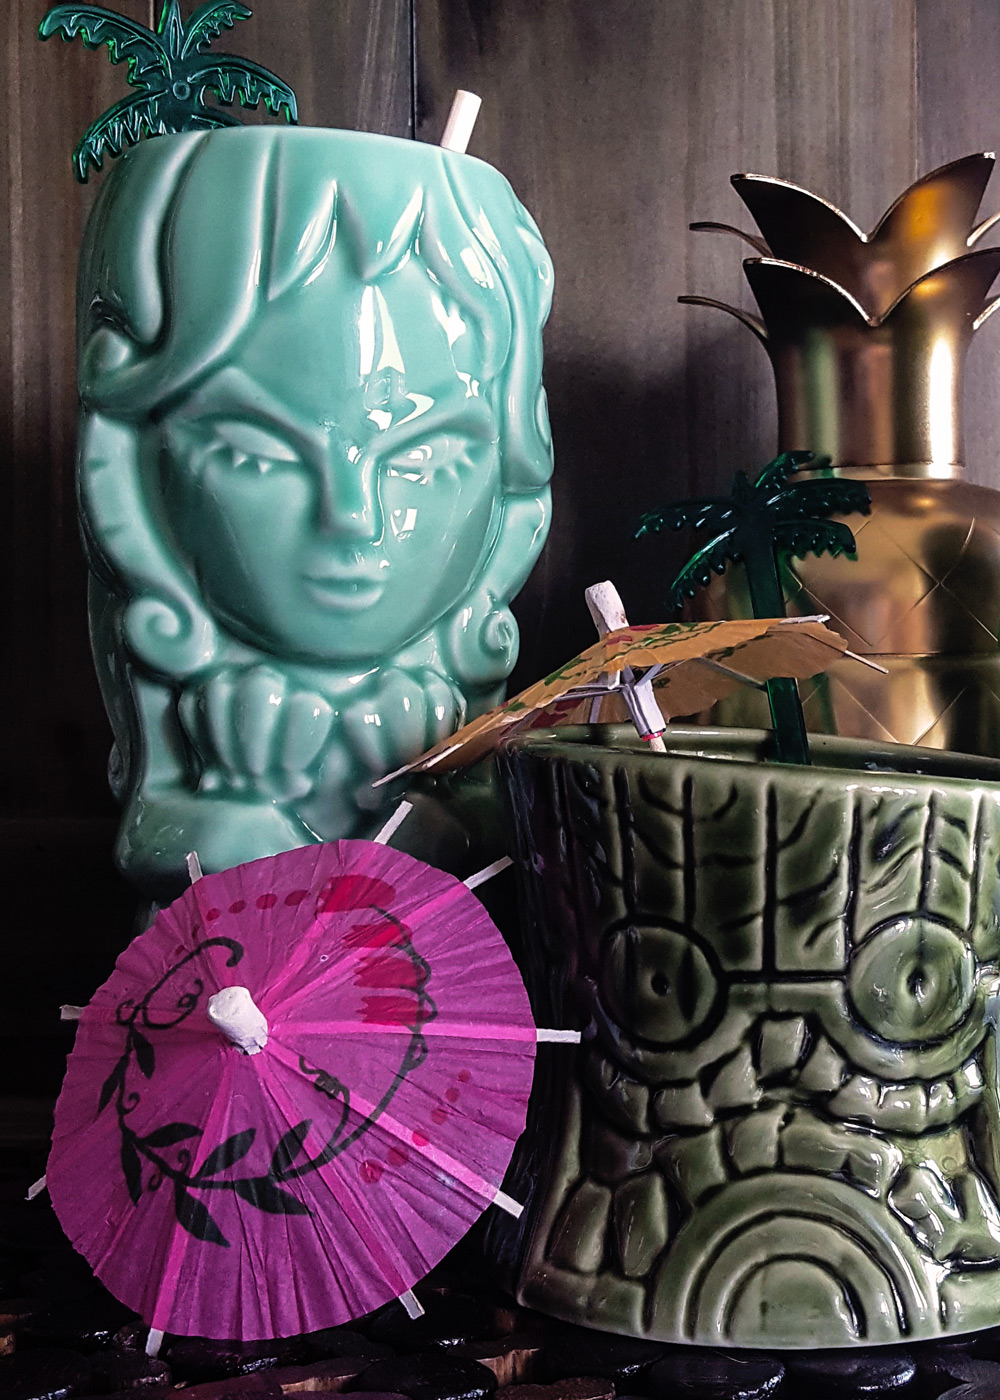 Ceramic tiki mugs in the shape of a mermaid and totem, with cocktail umbrellas.